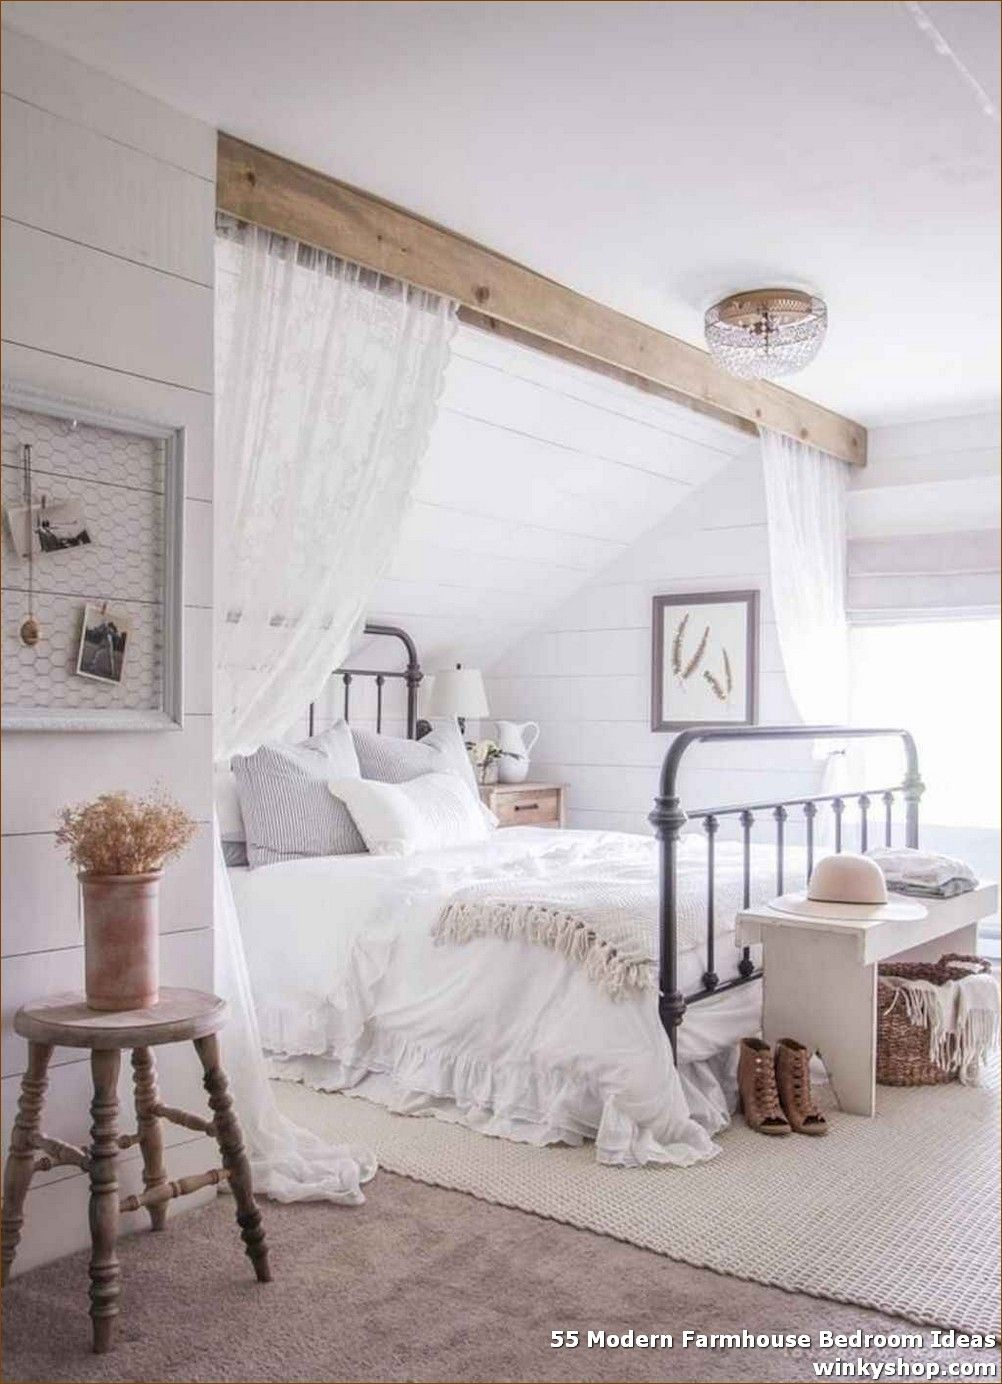 55 Modern Farmhouse Bedroom Ideas ✓ #modernfarmhousebedroom